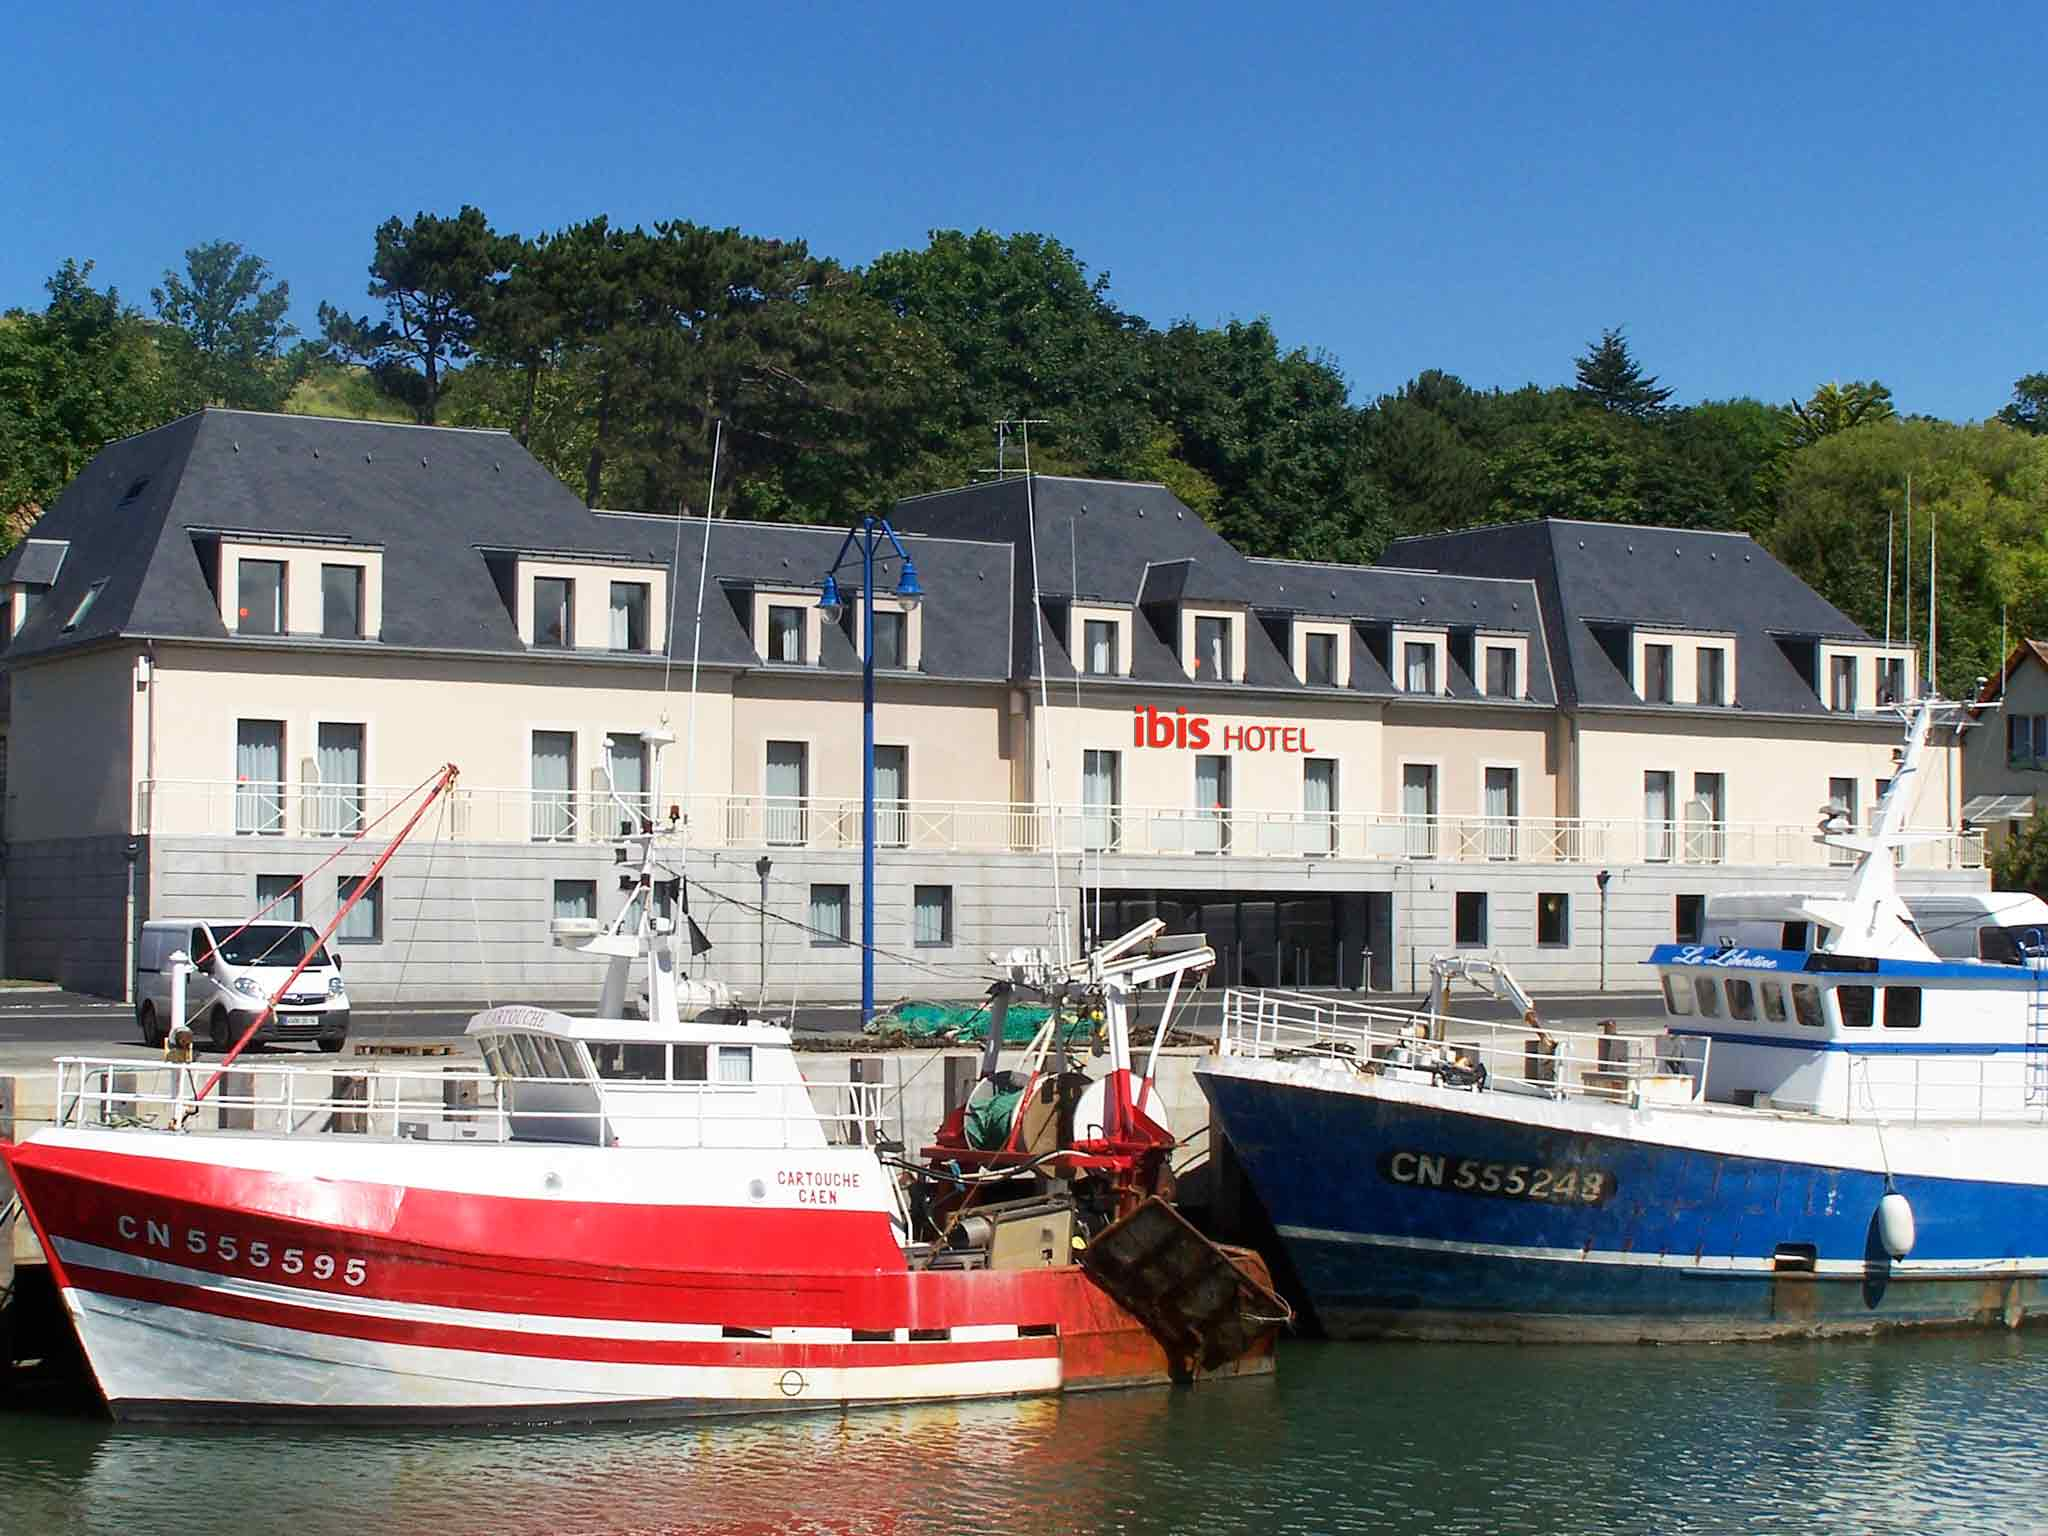 Hotel In PORT EN BESSIN Ibis Bayeux Port En Bessin - Location port en bessin